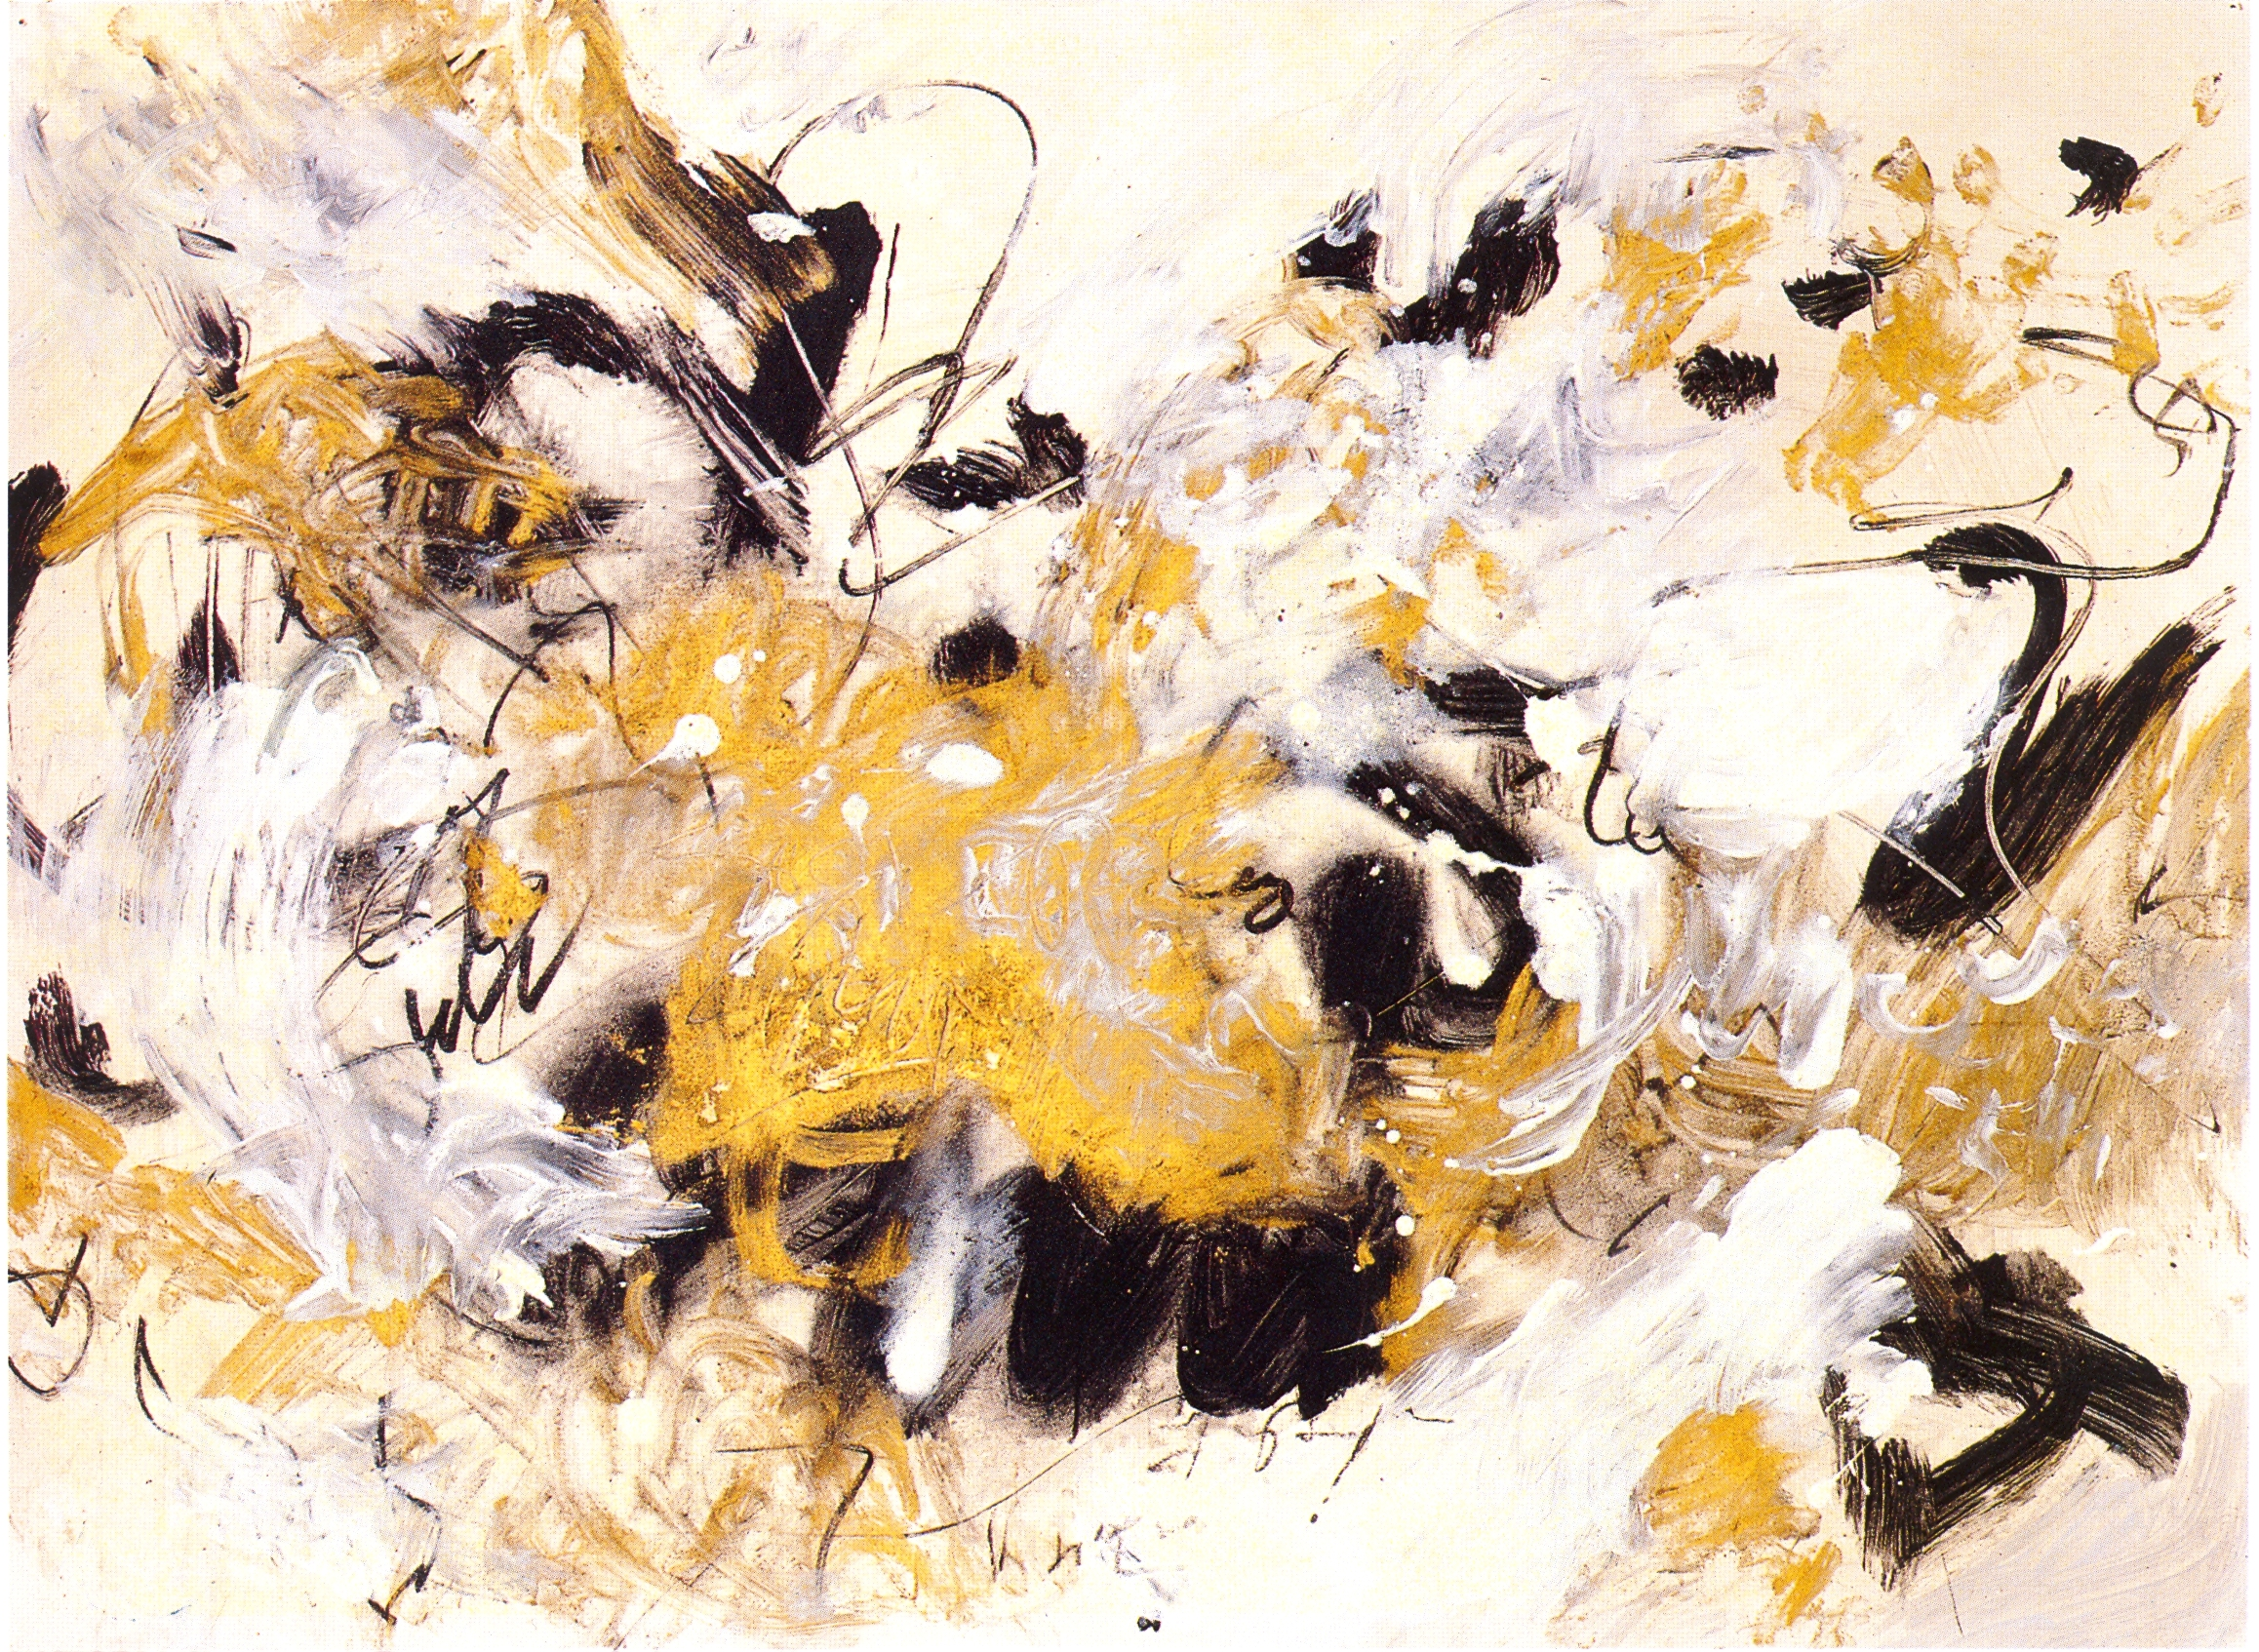 """Barbara Bartholomew,  """"Eight Sacred Caves"""" Series  Peonies Bloom in the Winter,   2002, Mixed Media on Paper, 22"""" x 30"""""""